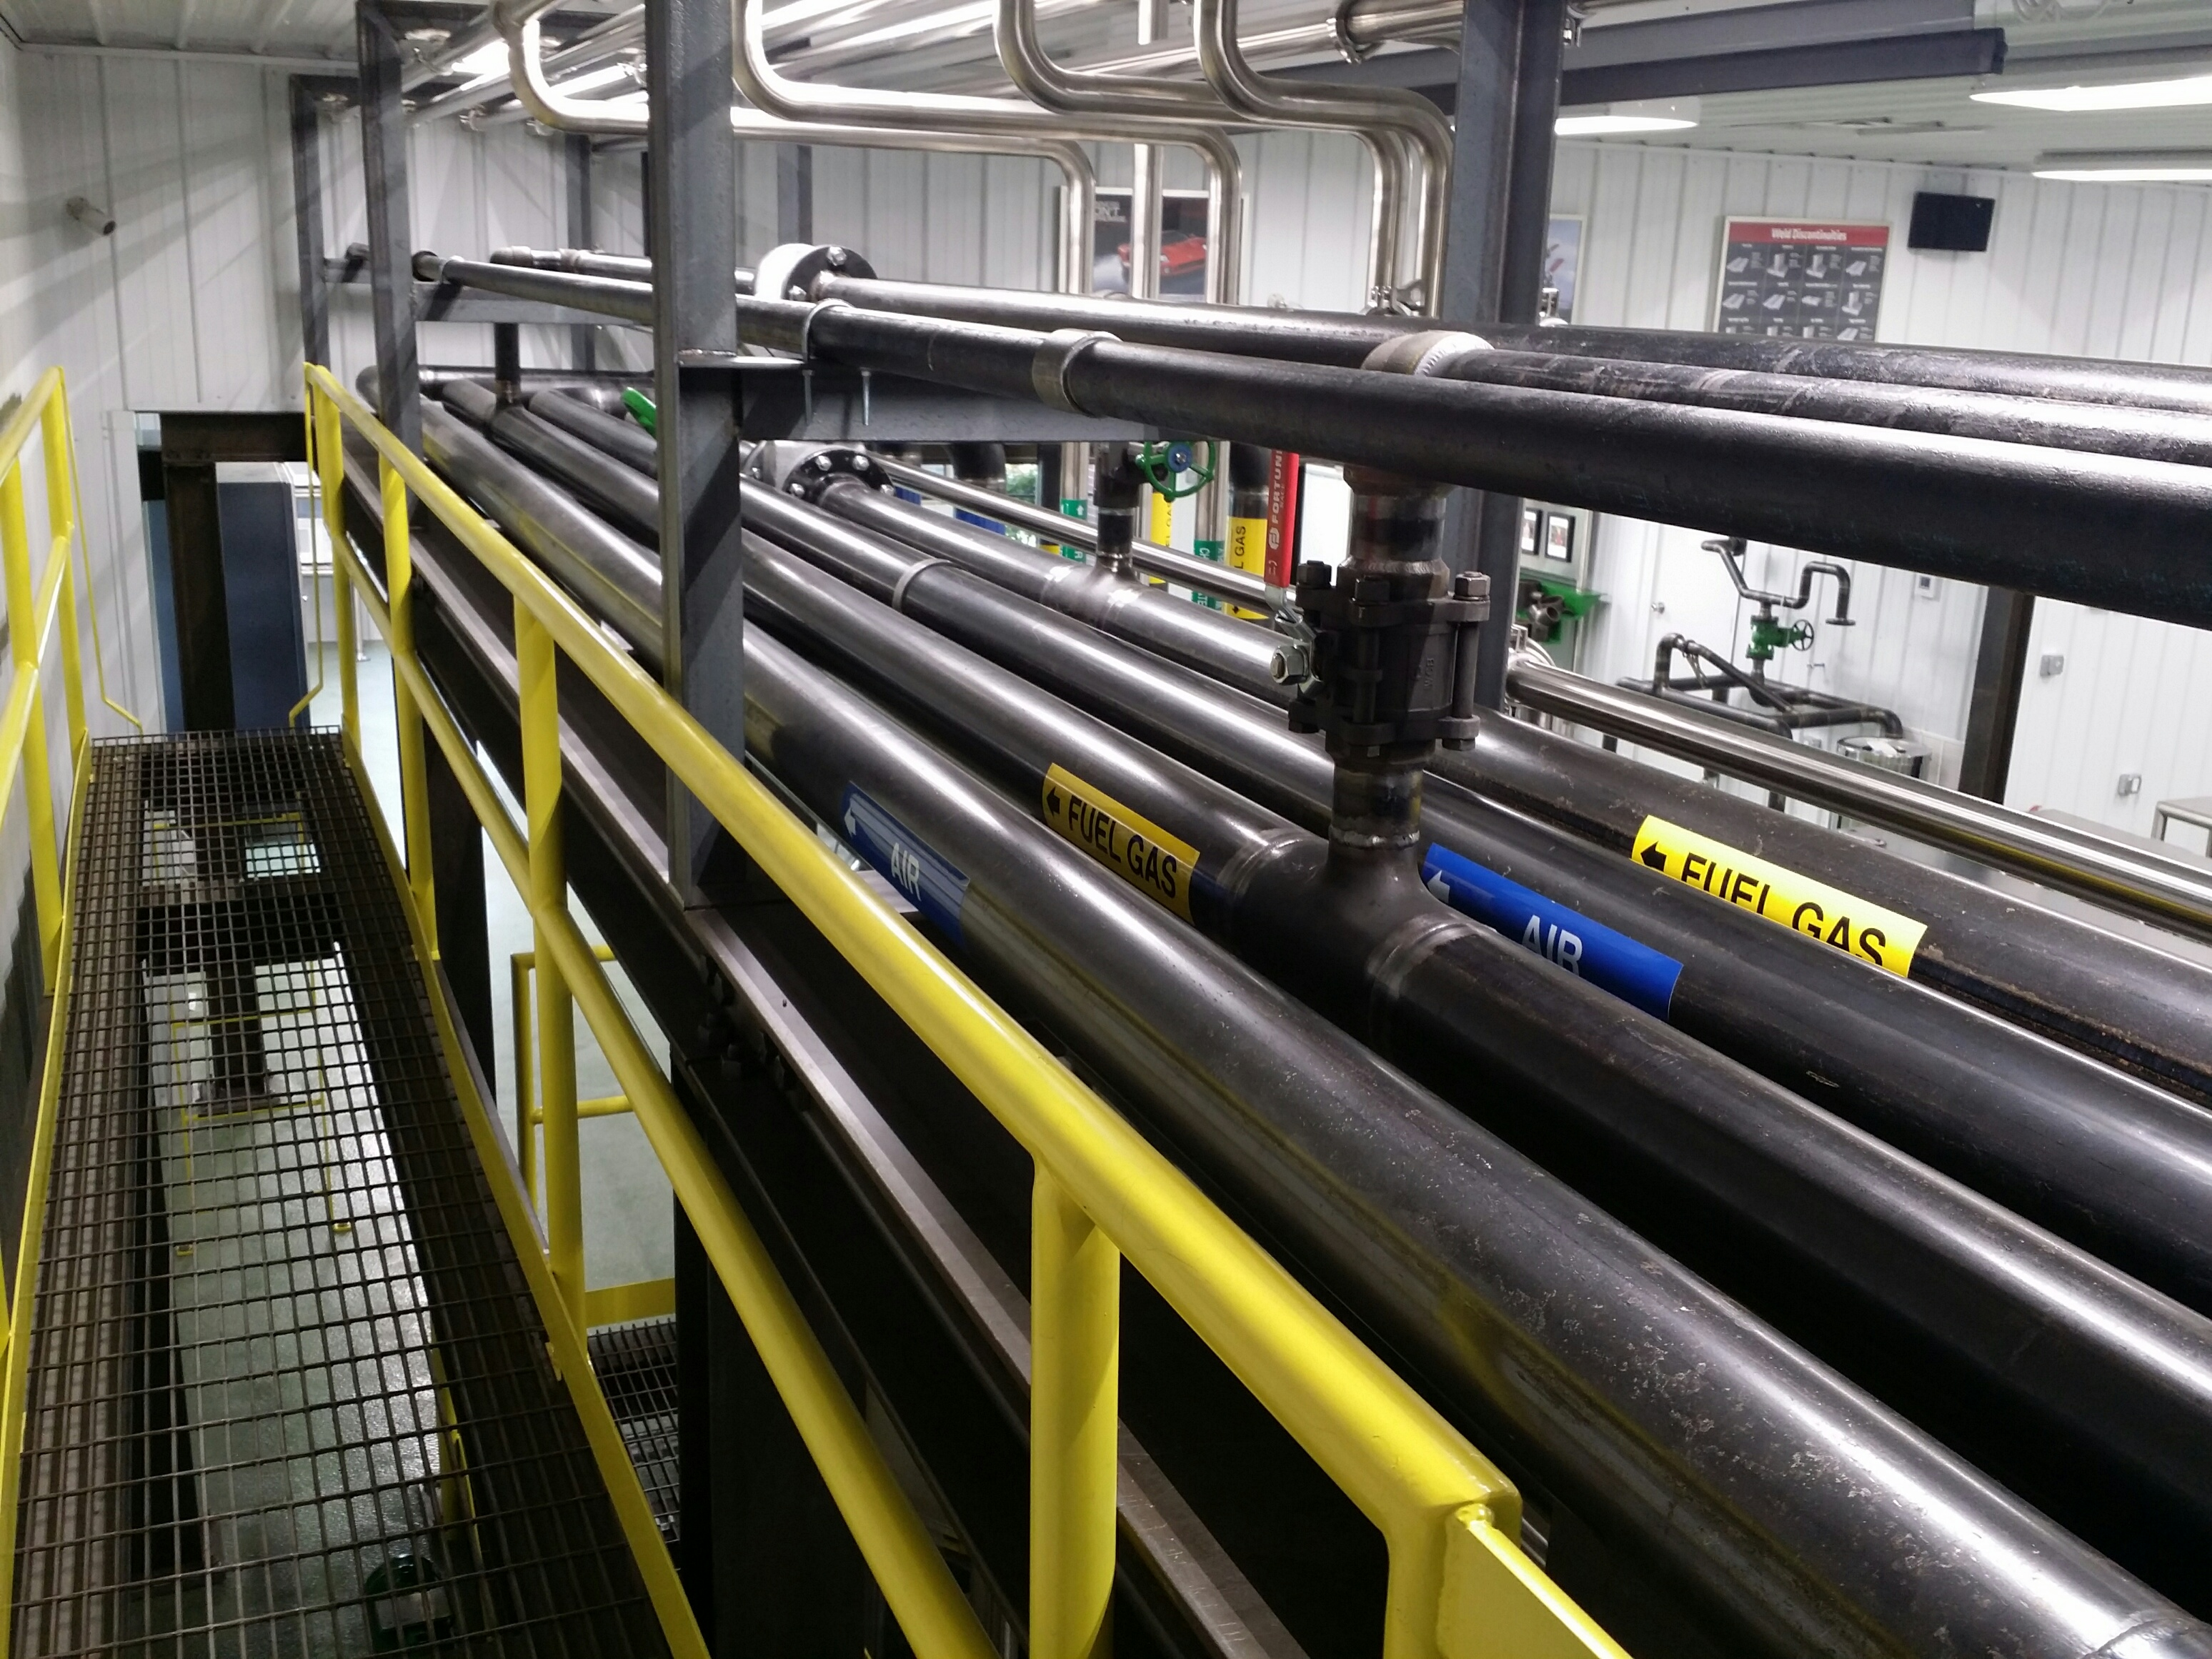 Image of numerous black pipes